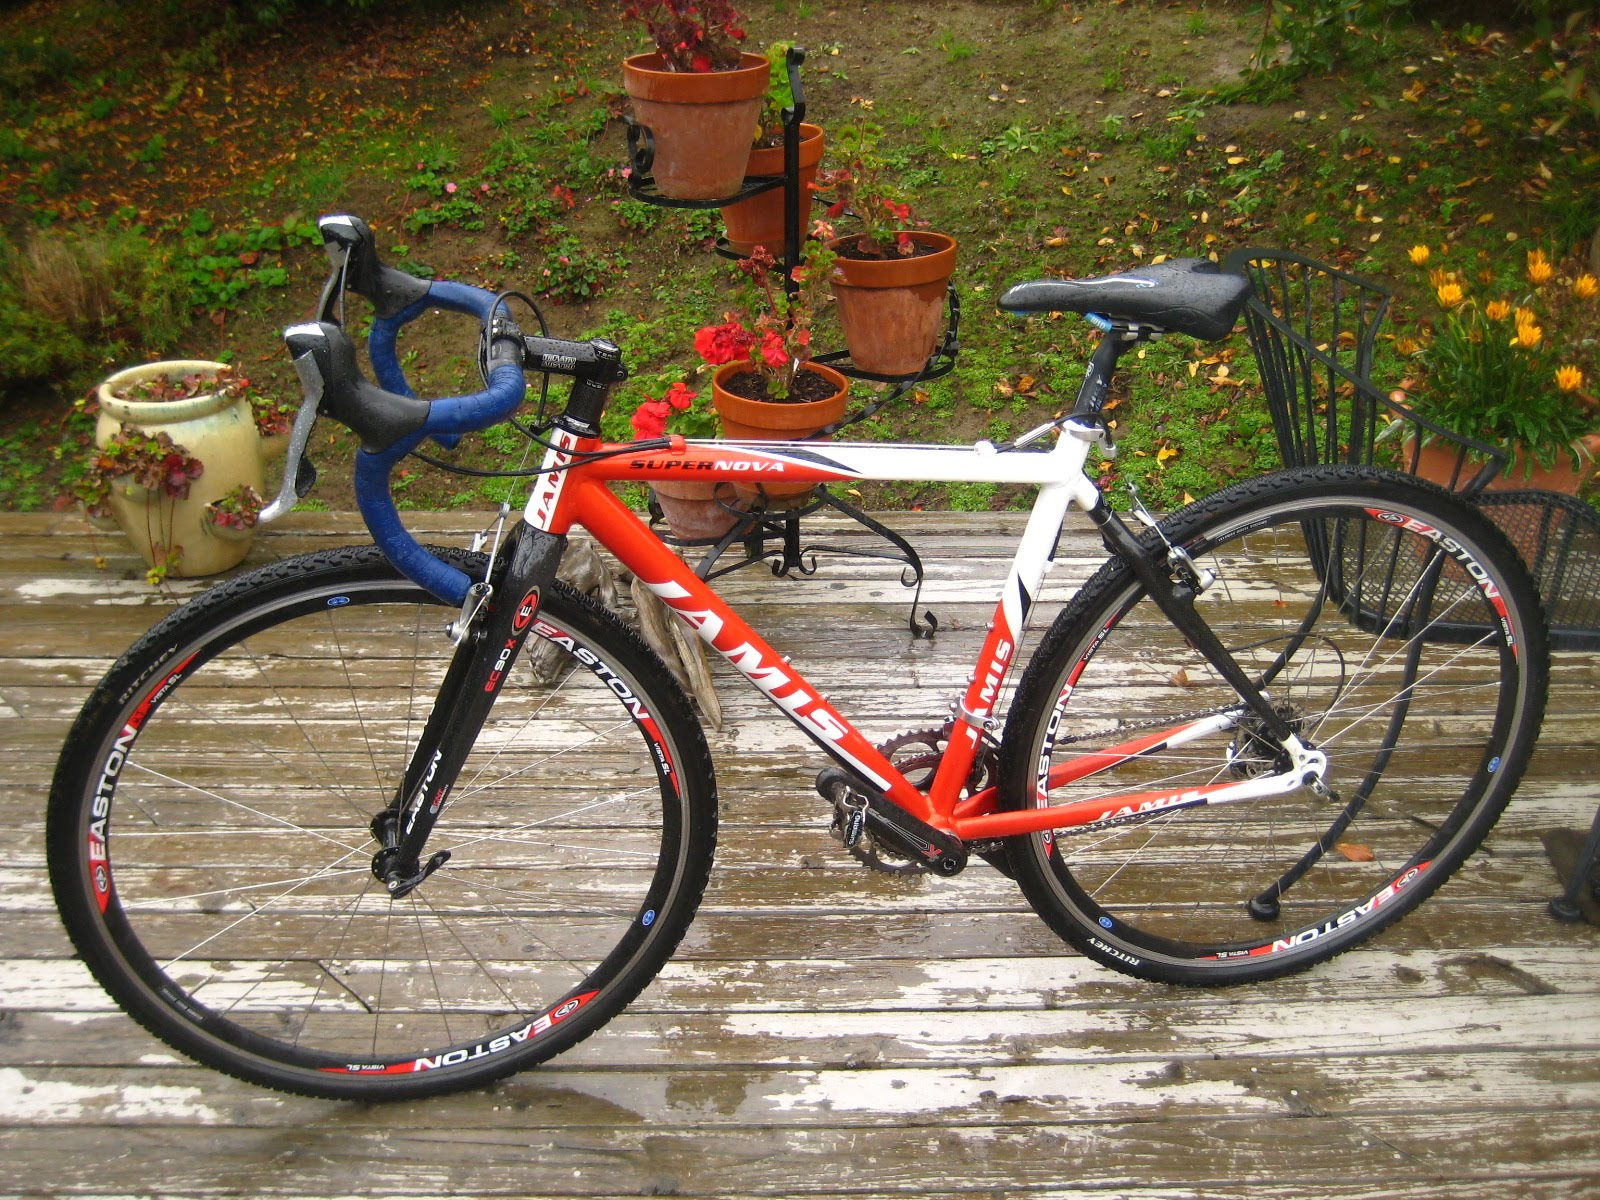 Cyclocross Bikes On Sale This bike also features a